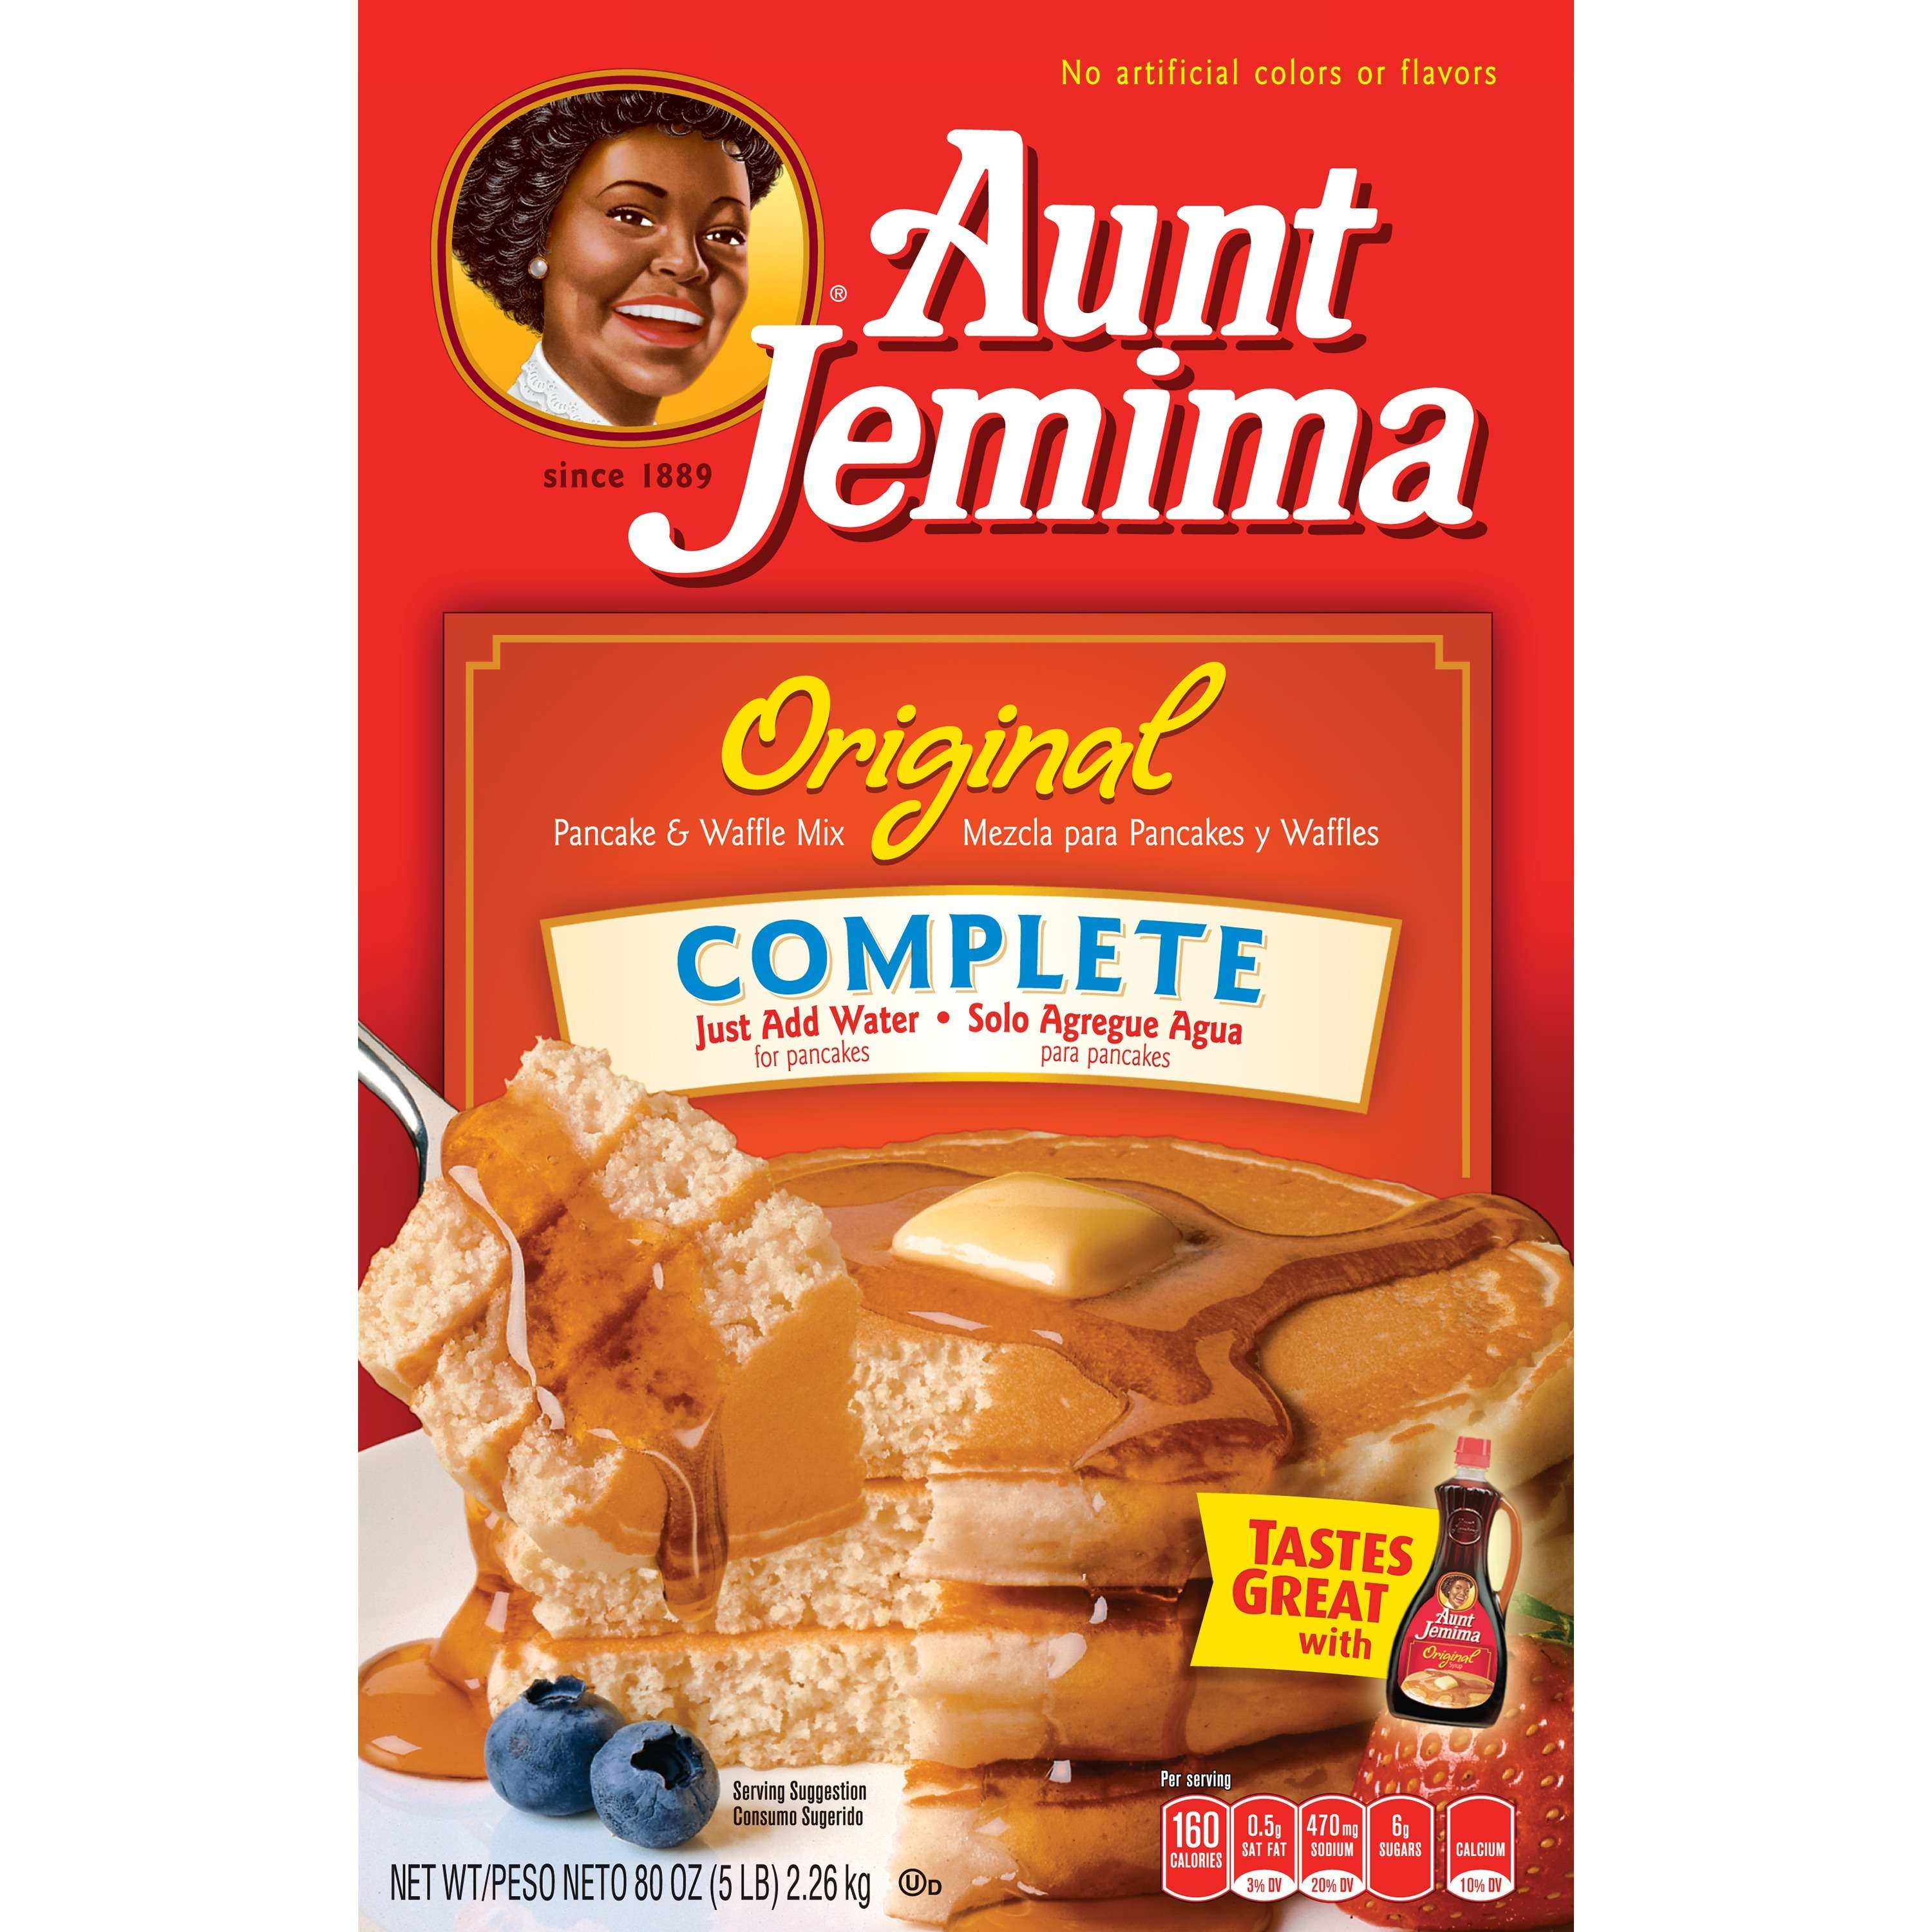 Aunt Jemima Original Complete Pancake & Waffle Mix, 80 oz Box by The Quaker Oats Company